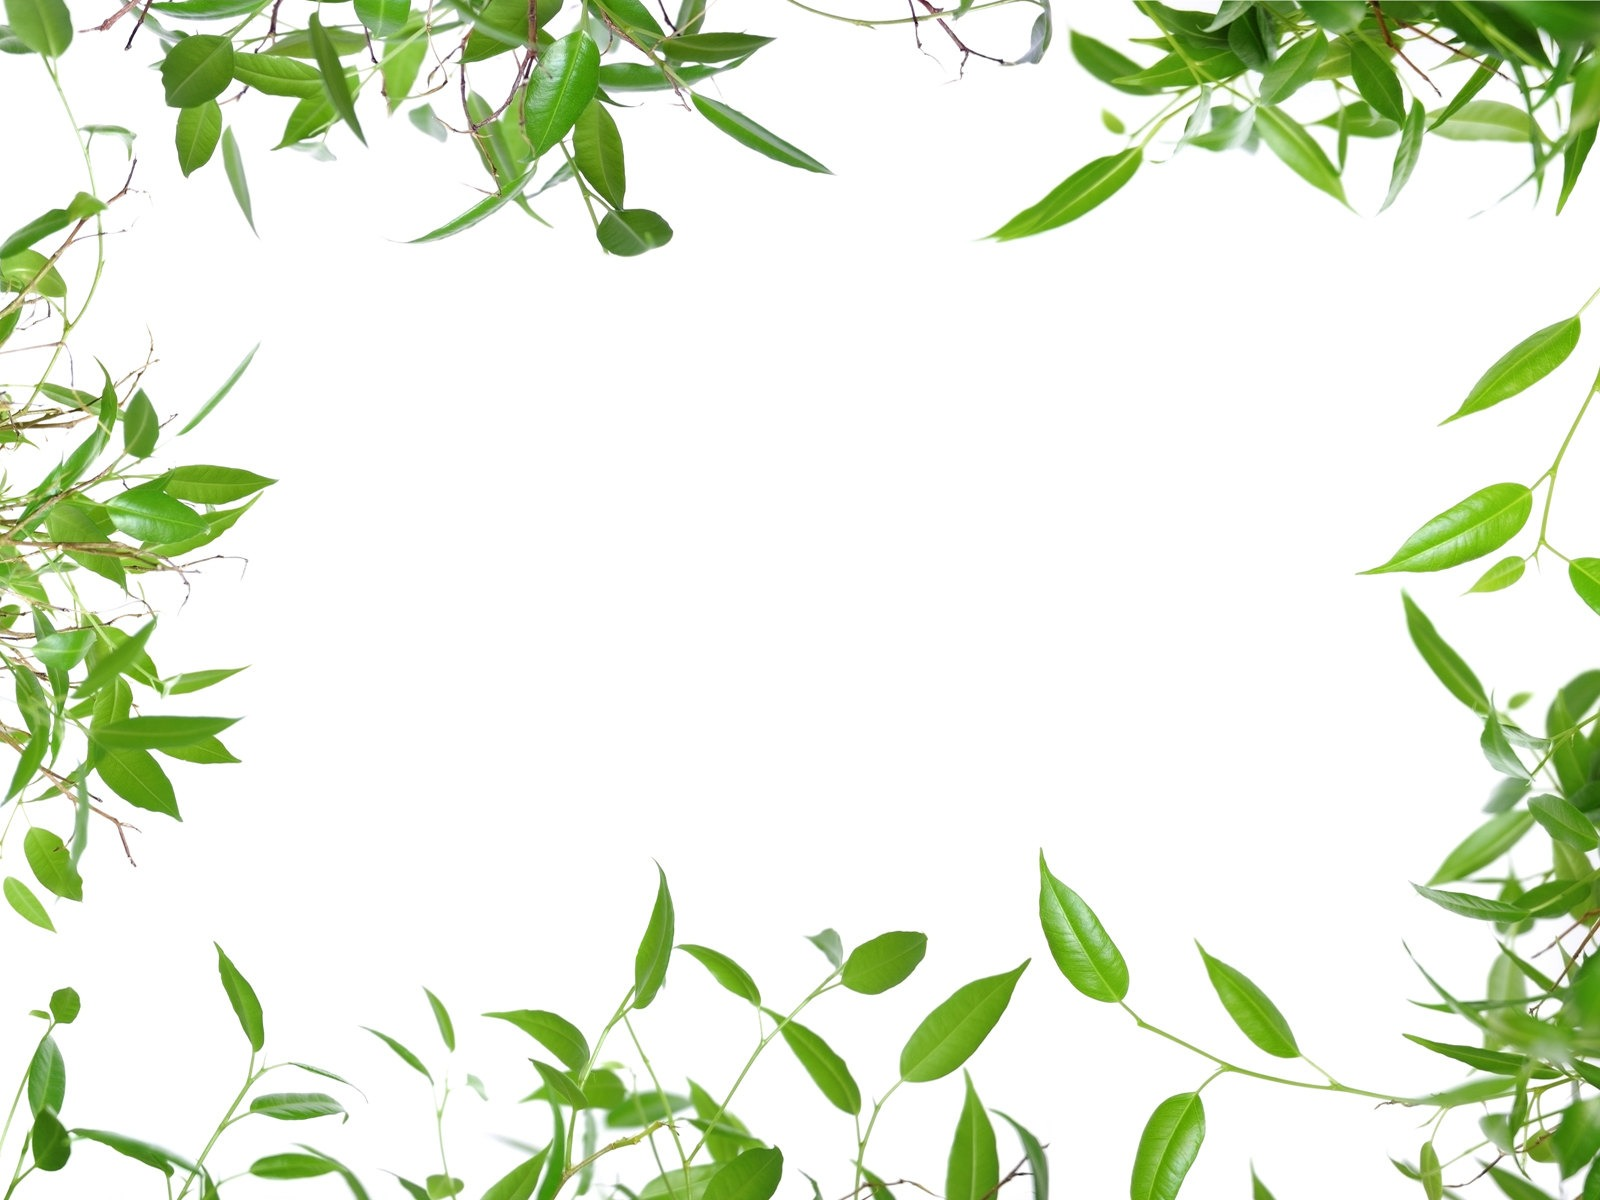 Description leaves border fresh green leaves Current Size 1600 x 1600x1200